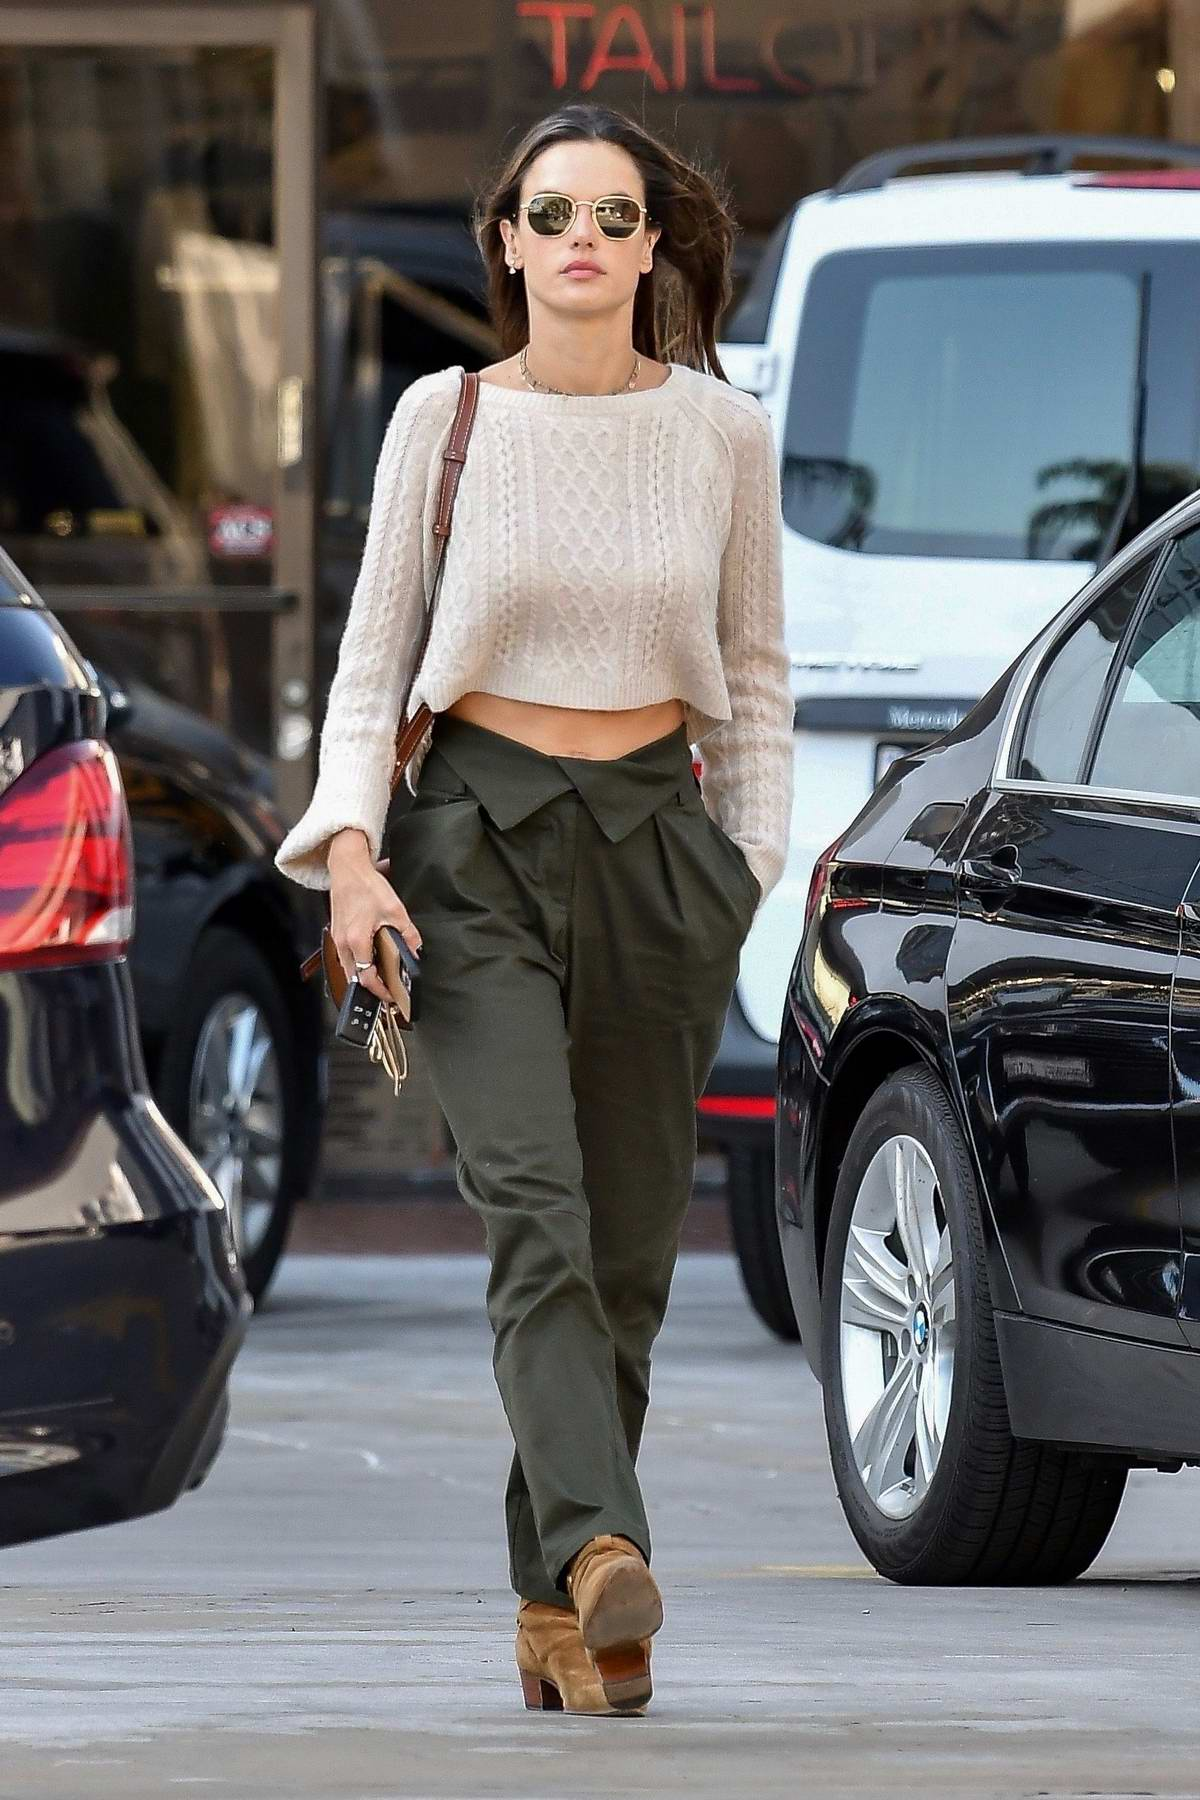 Alessandra Ambrosio looks stunning in a cropped beige sweater while out running errands in Santa Monica, California